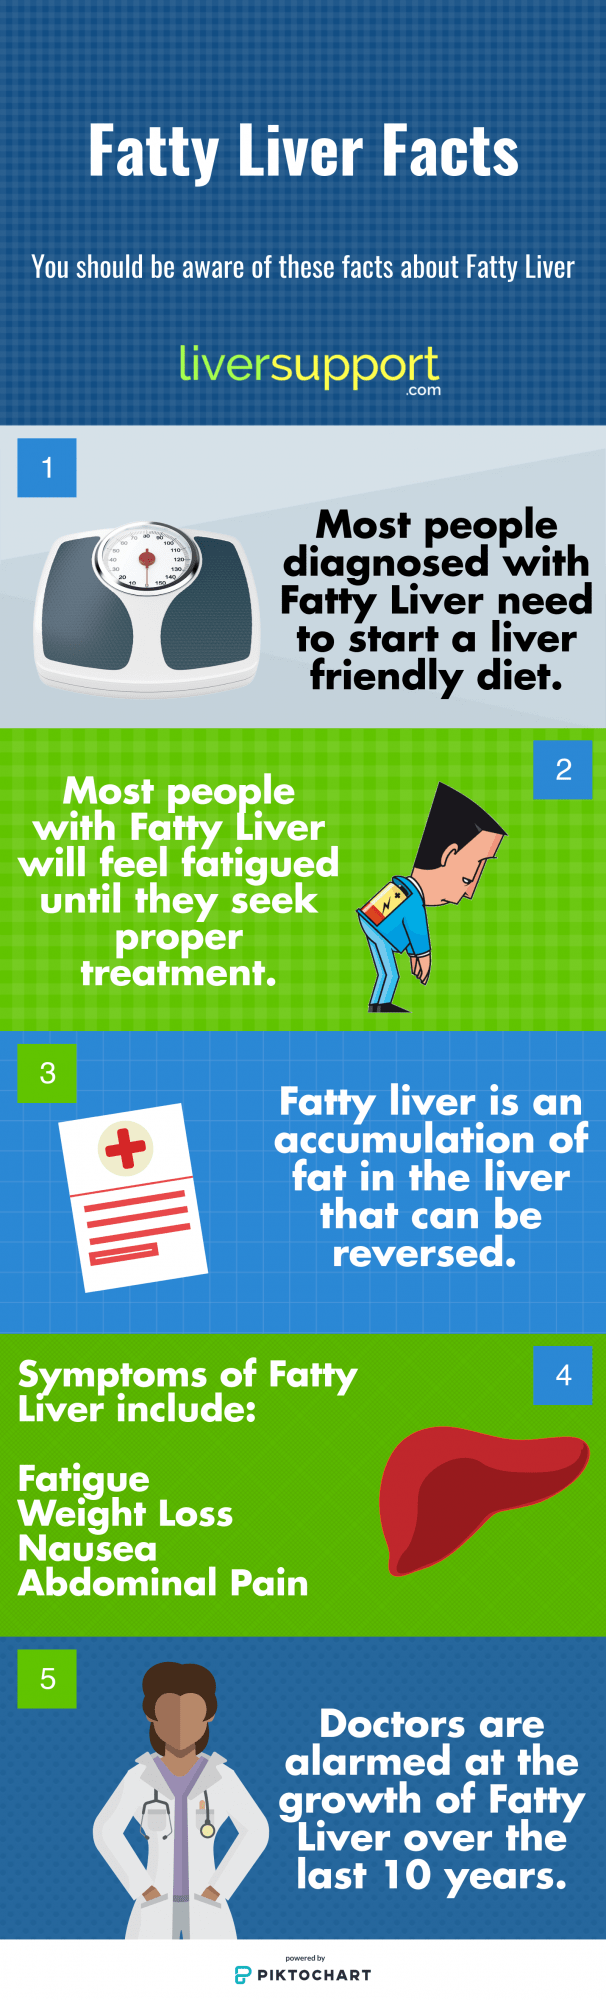 Fatty Liver Facts Infographic